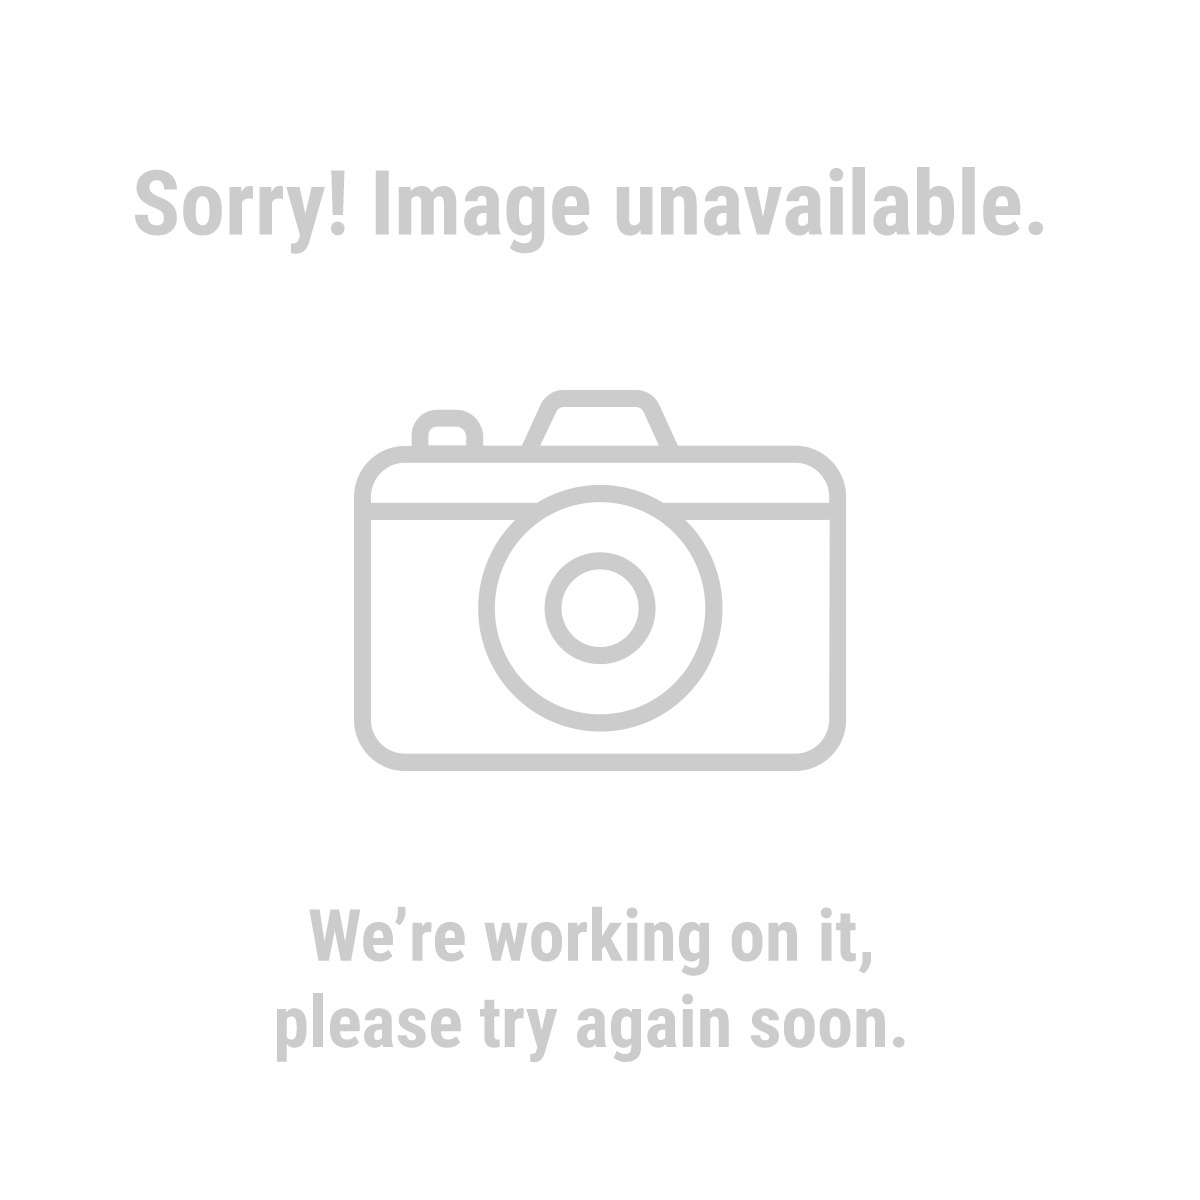 Central Hydraulics 4075 2000 Lb. Low-Profile Transmission Jack